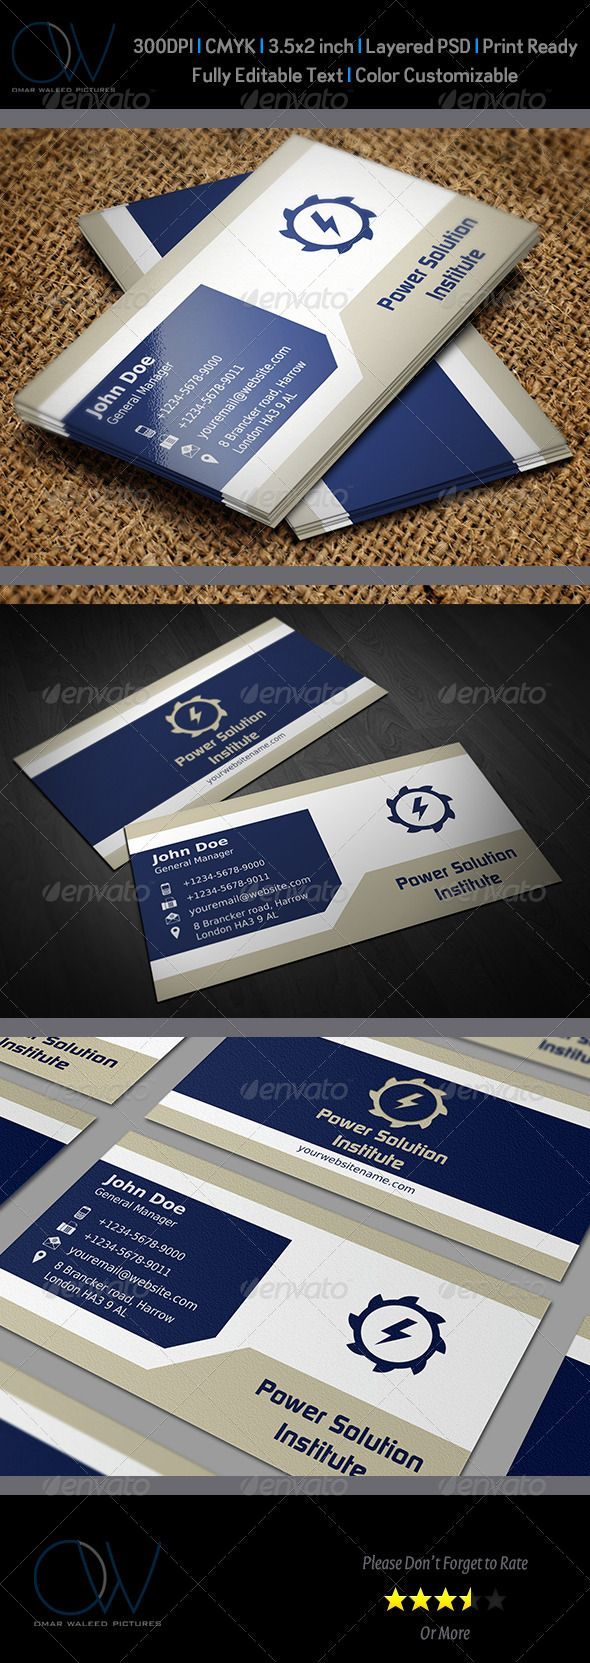 Corporate Business Card Template Vol.39